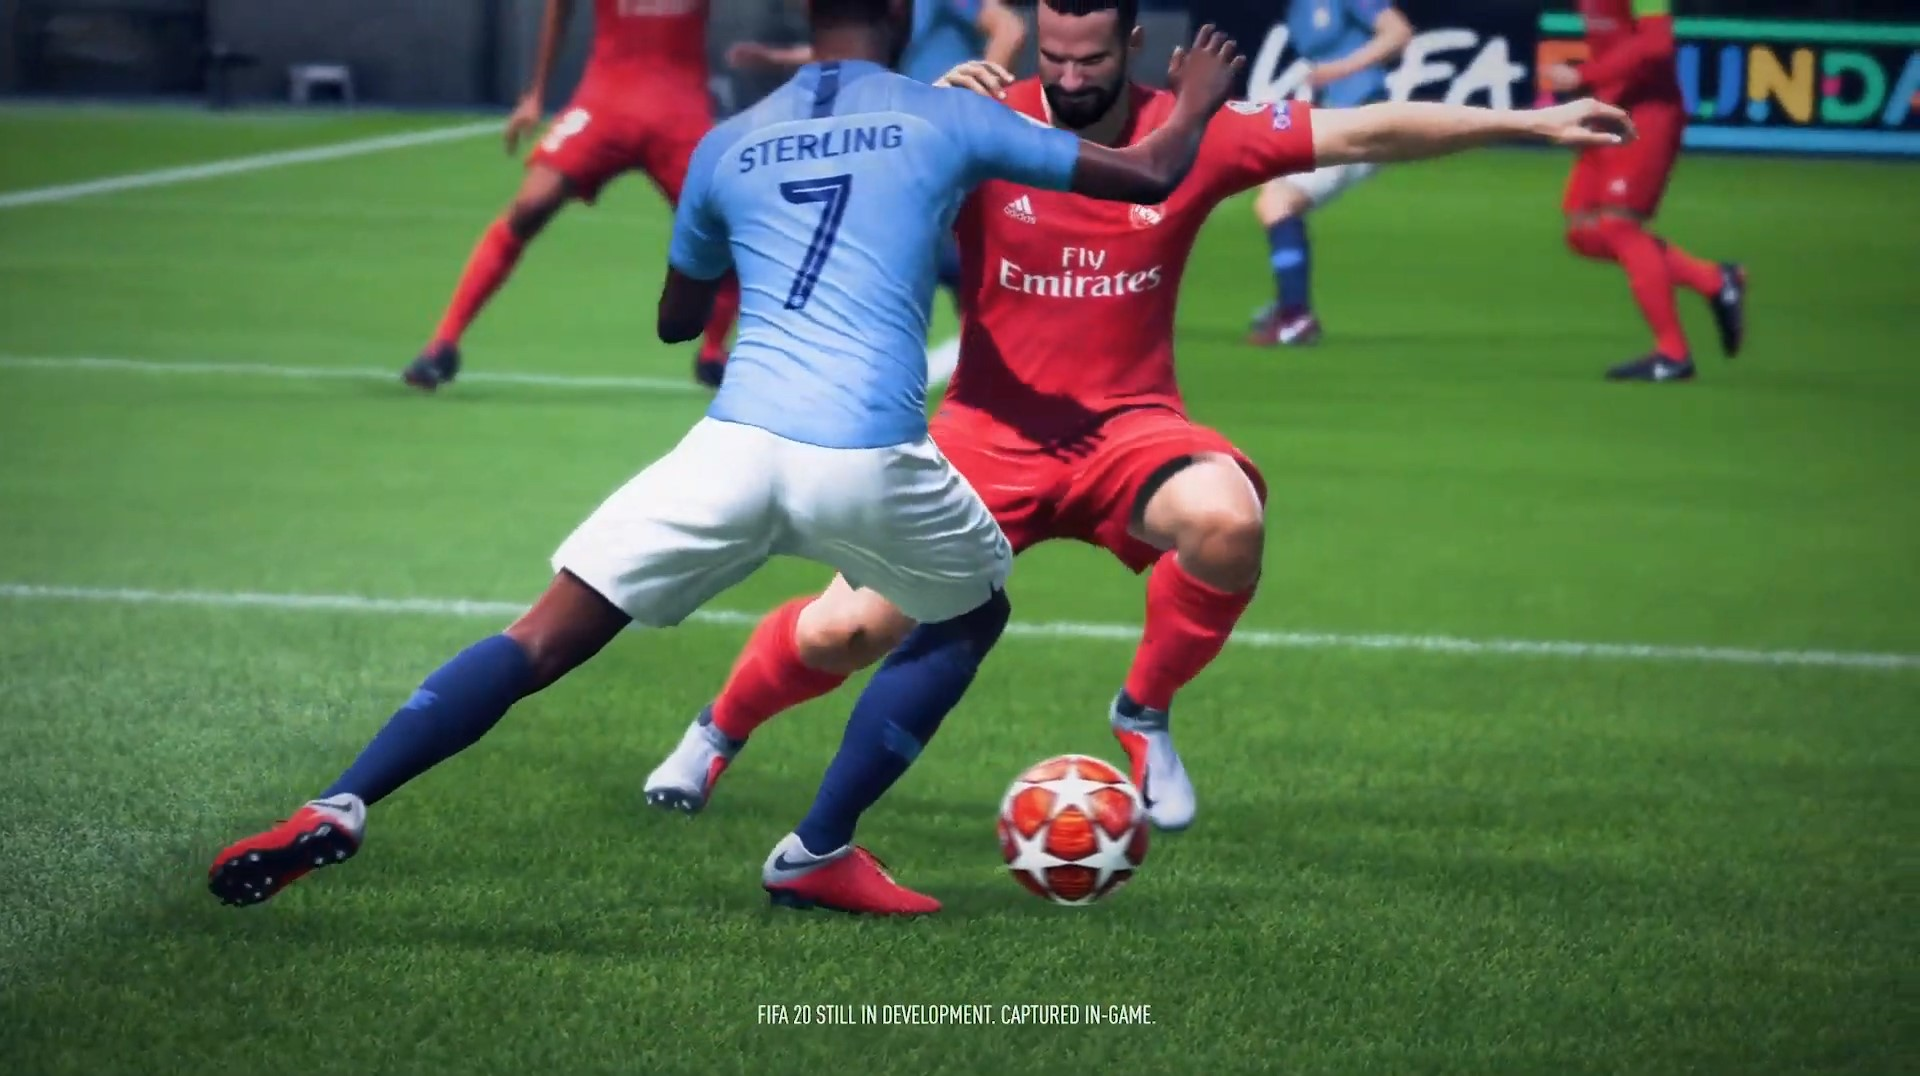 Gameplay-features in FIFA 20